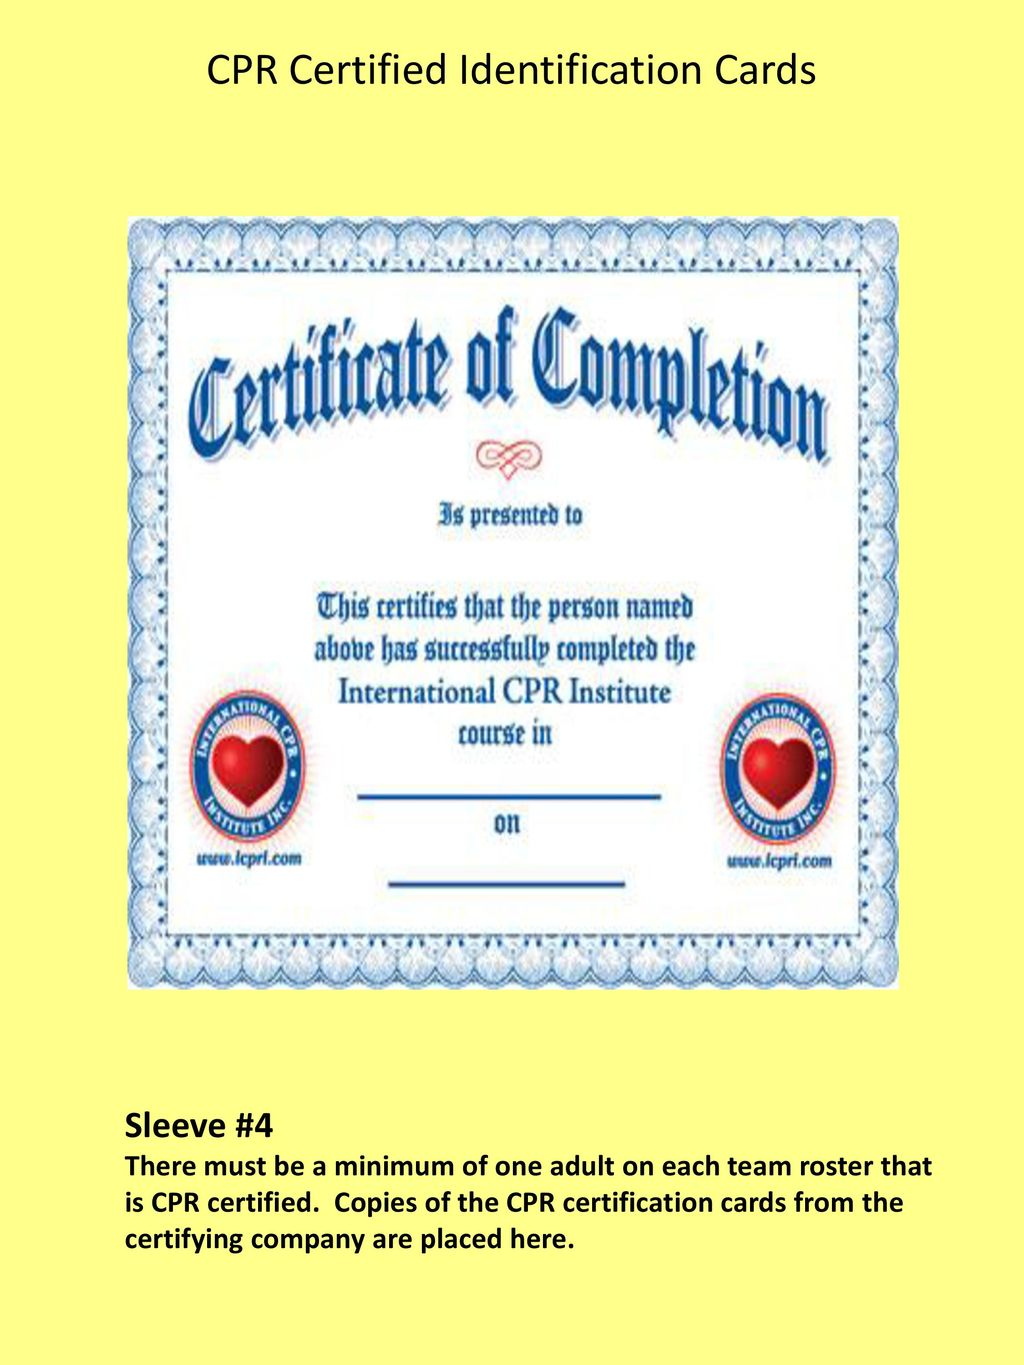 Southeast region pop warner ppt download cpr certified identification cards xflitez Image collections